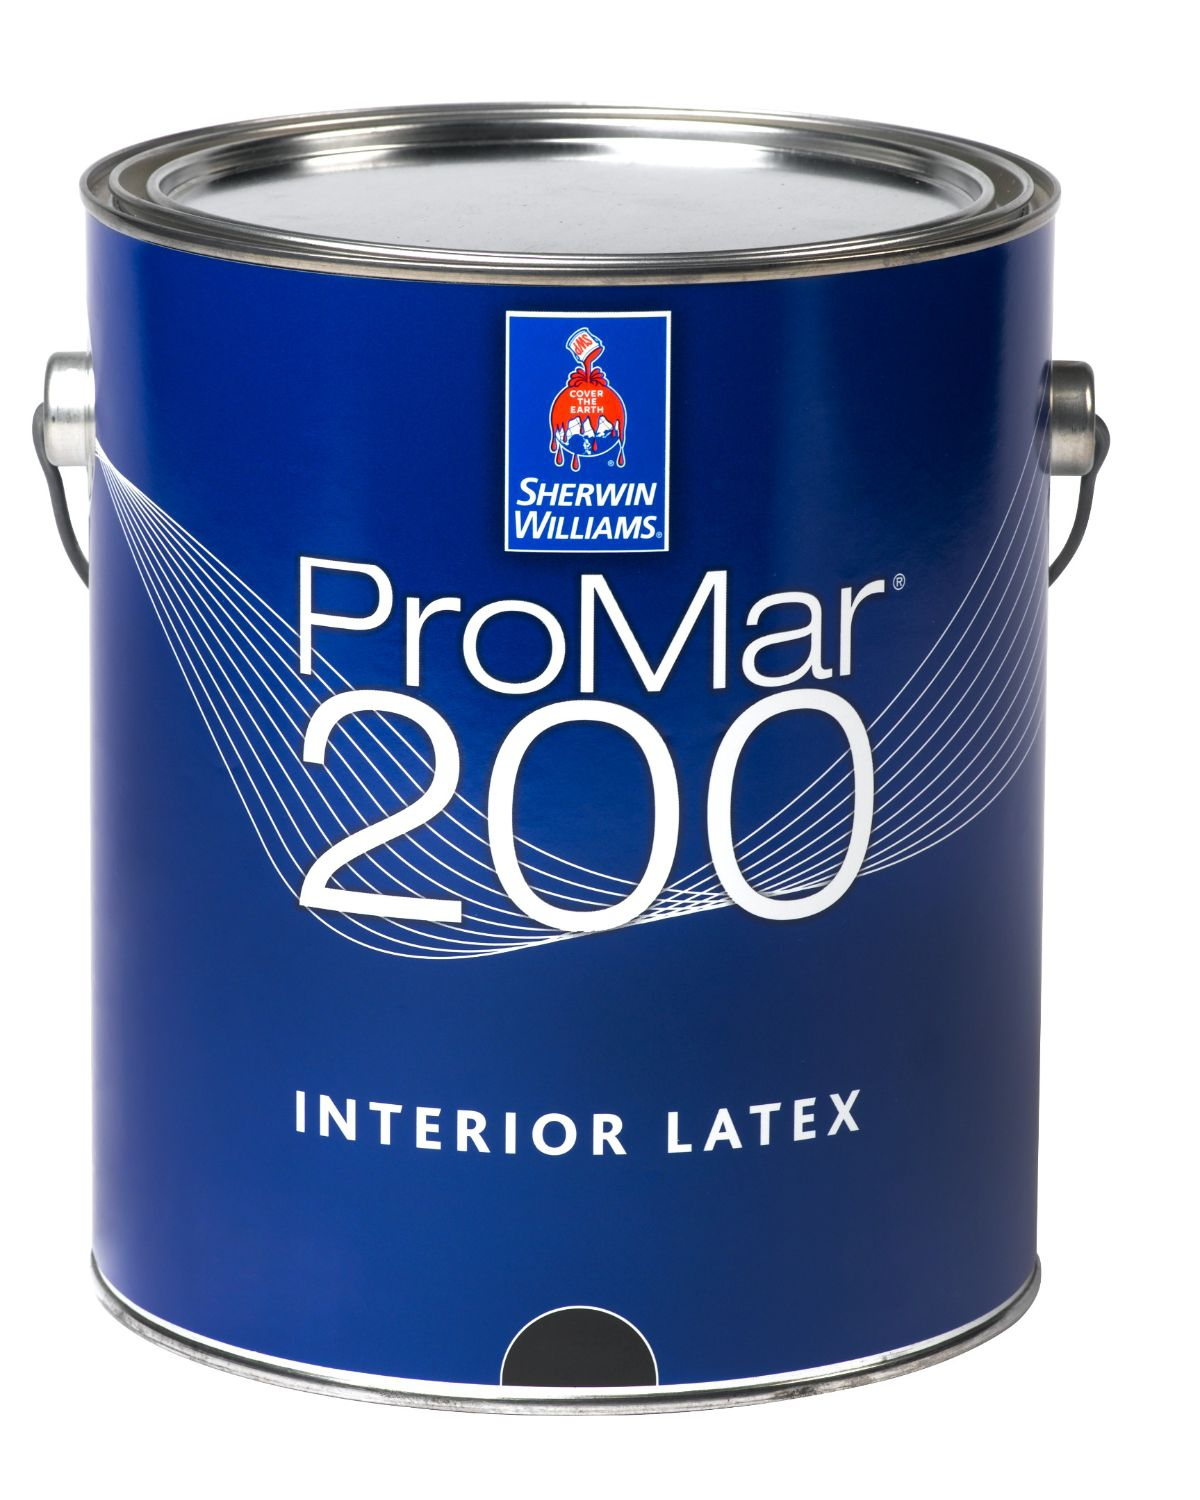 ProMar® 200 Interior Latex